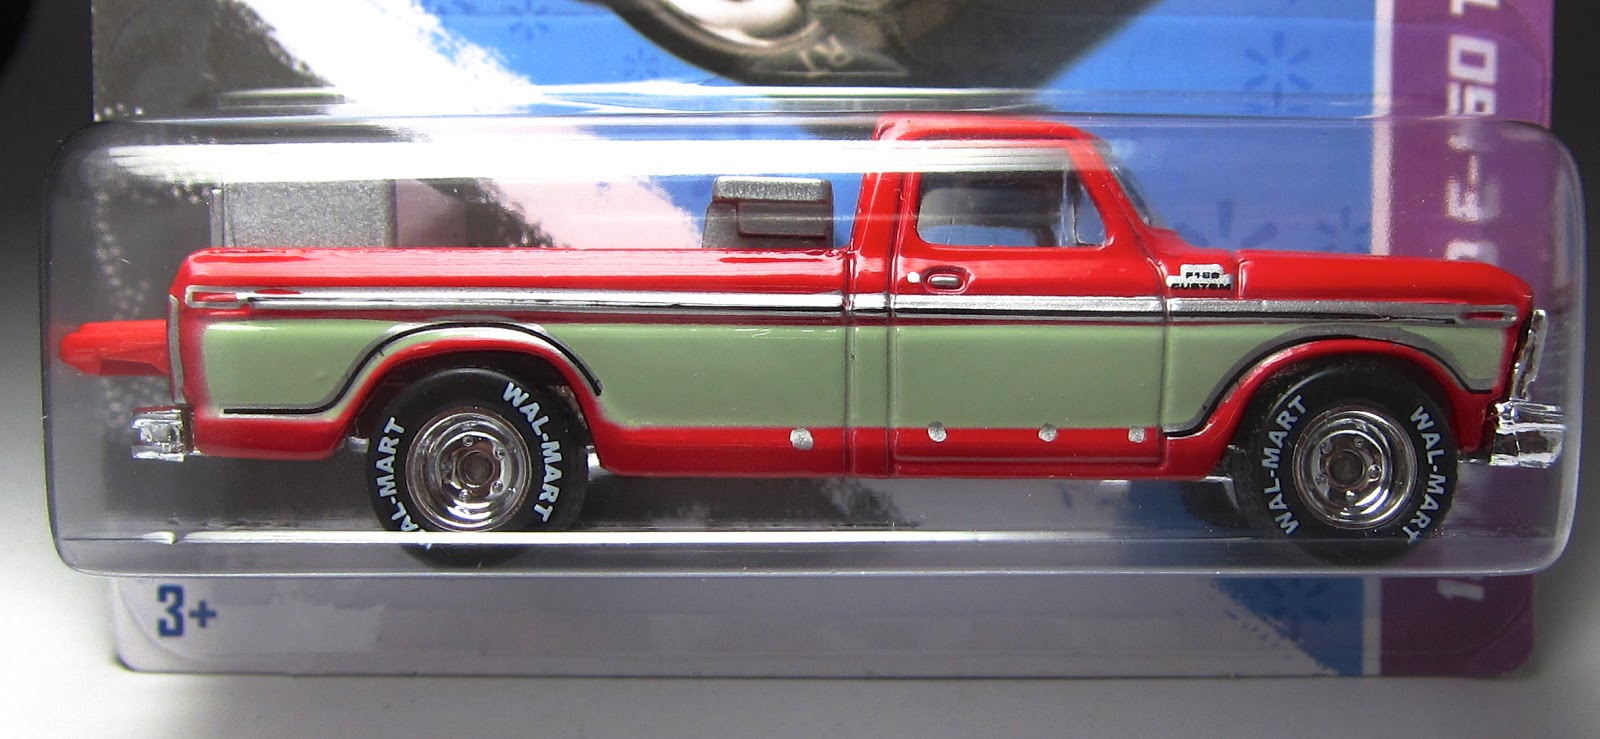 hot wheels sam walton 79 ford f 150 truck 2013 walmart exclusive - Rare Hot Wheels Cars 2013